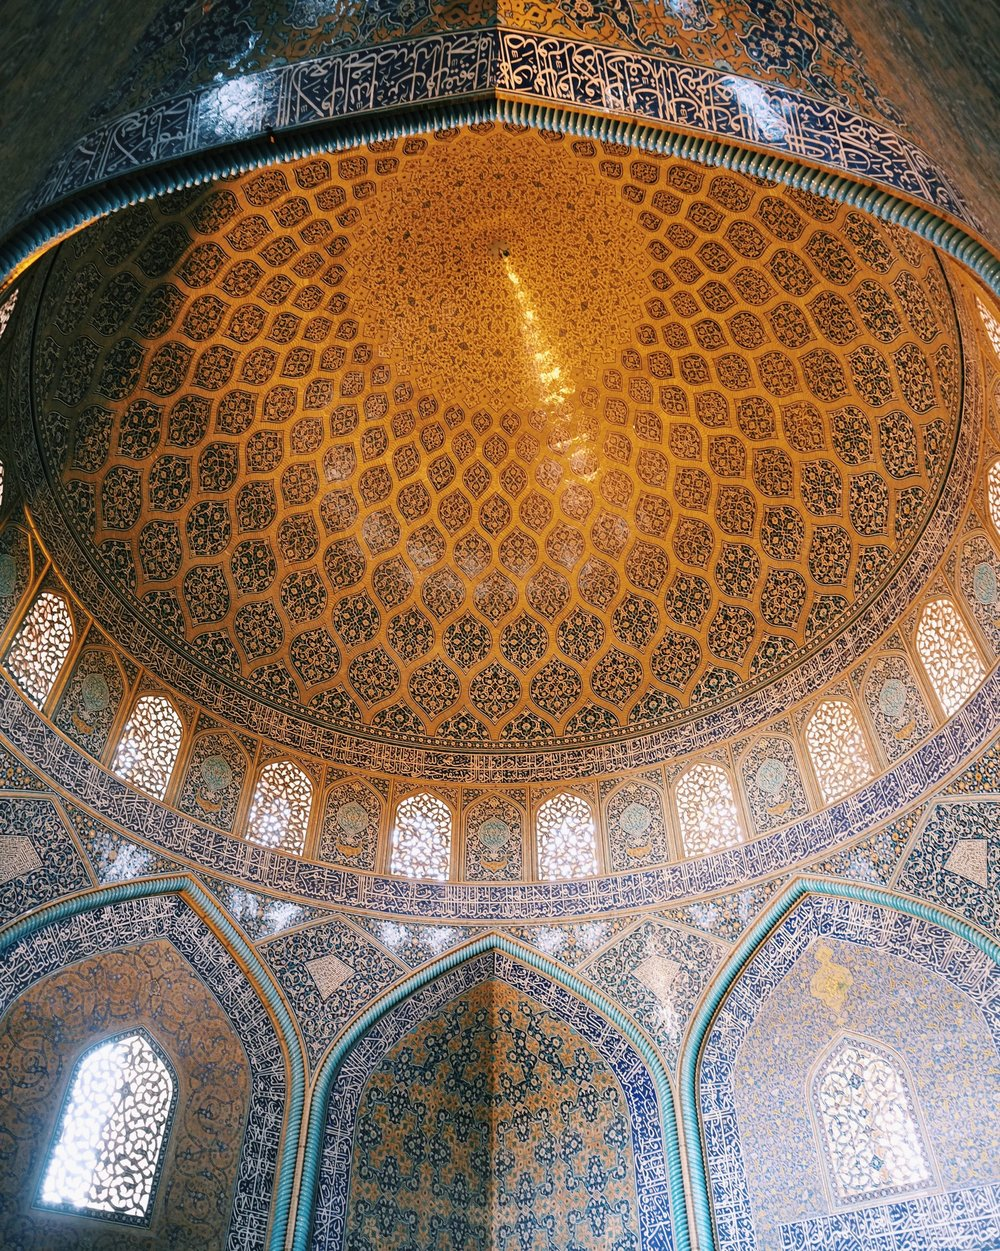 The ceiling of Lotfallah Mosque in Esfahan, Iran.jpg